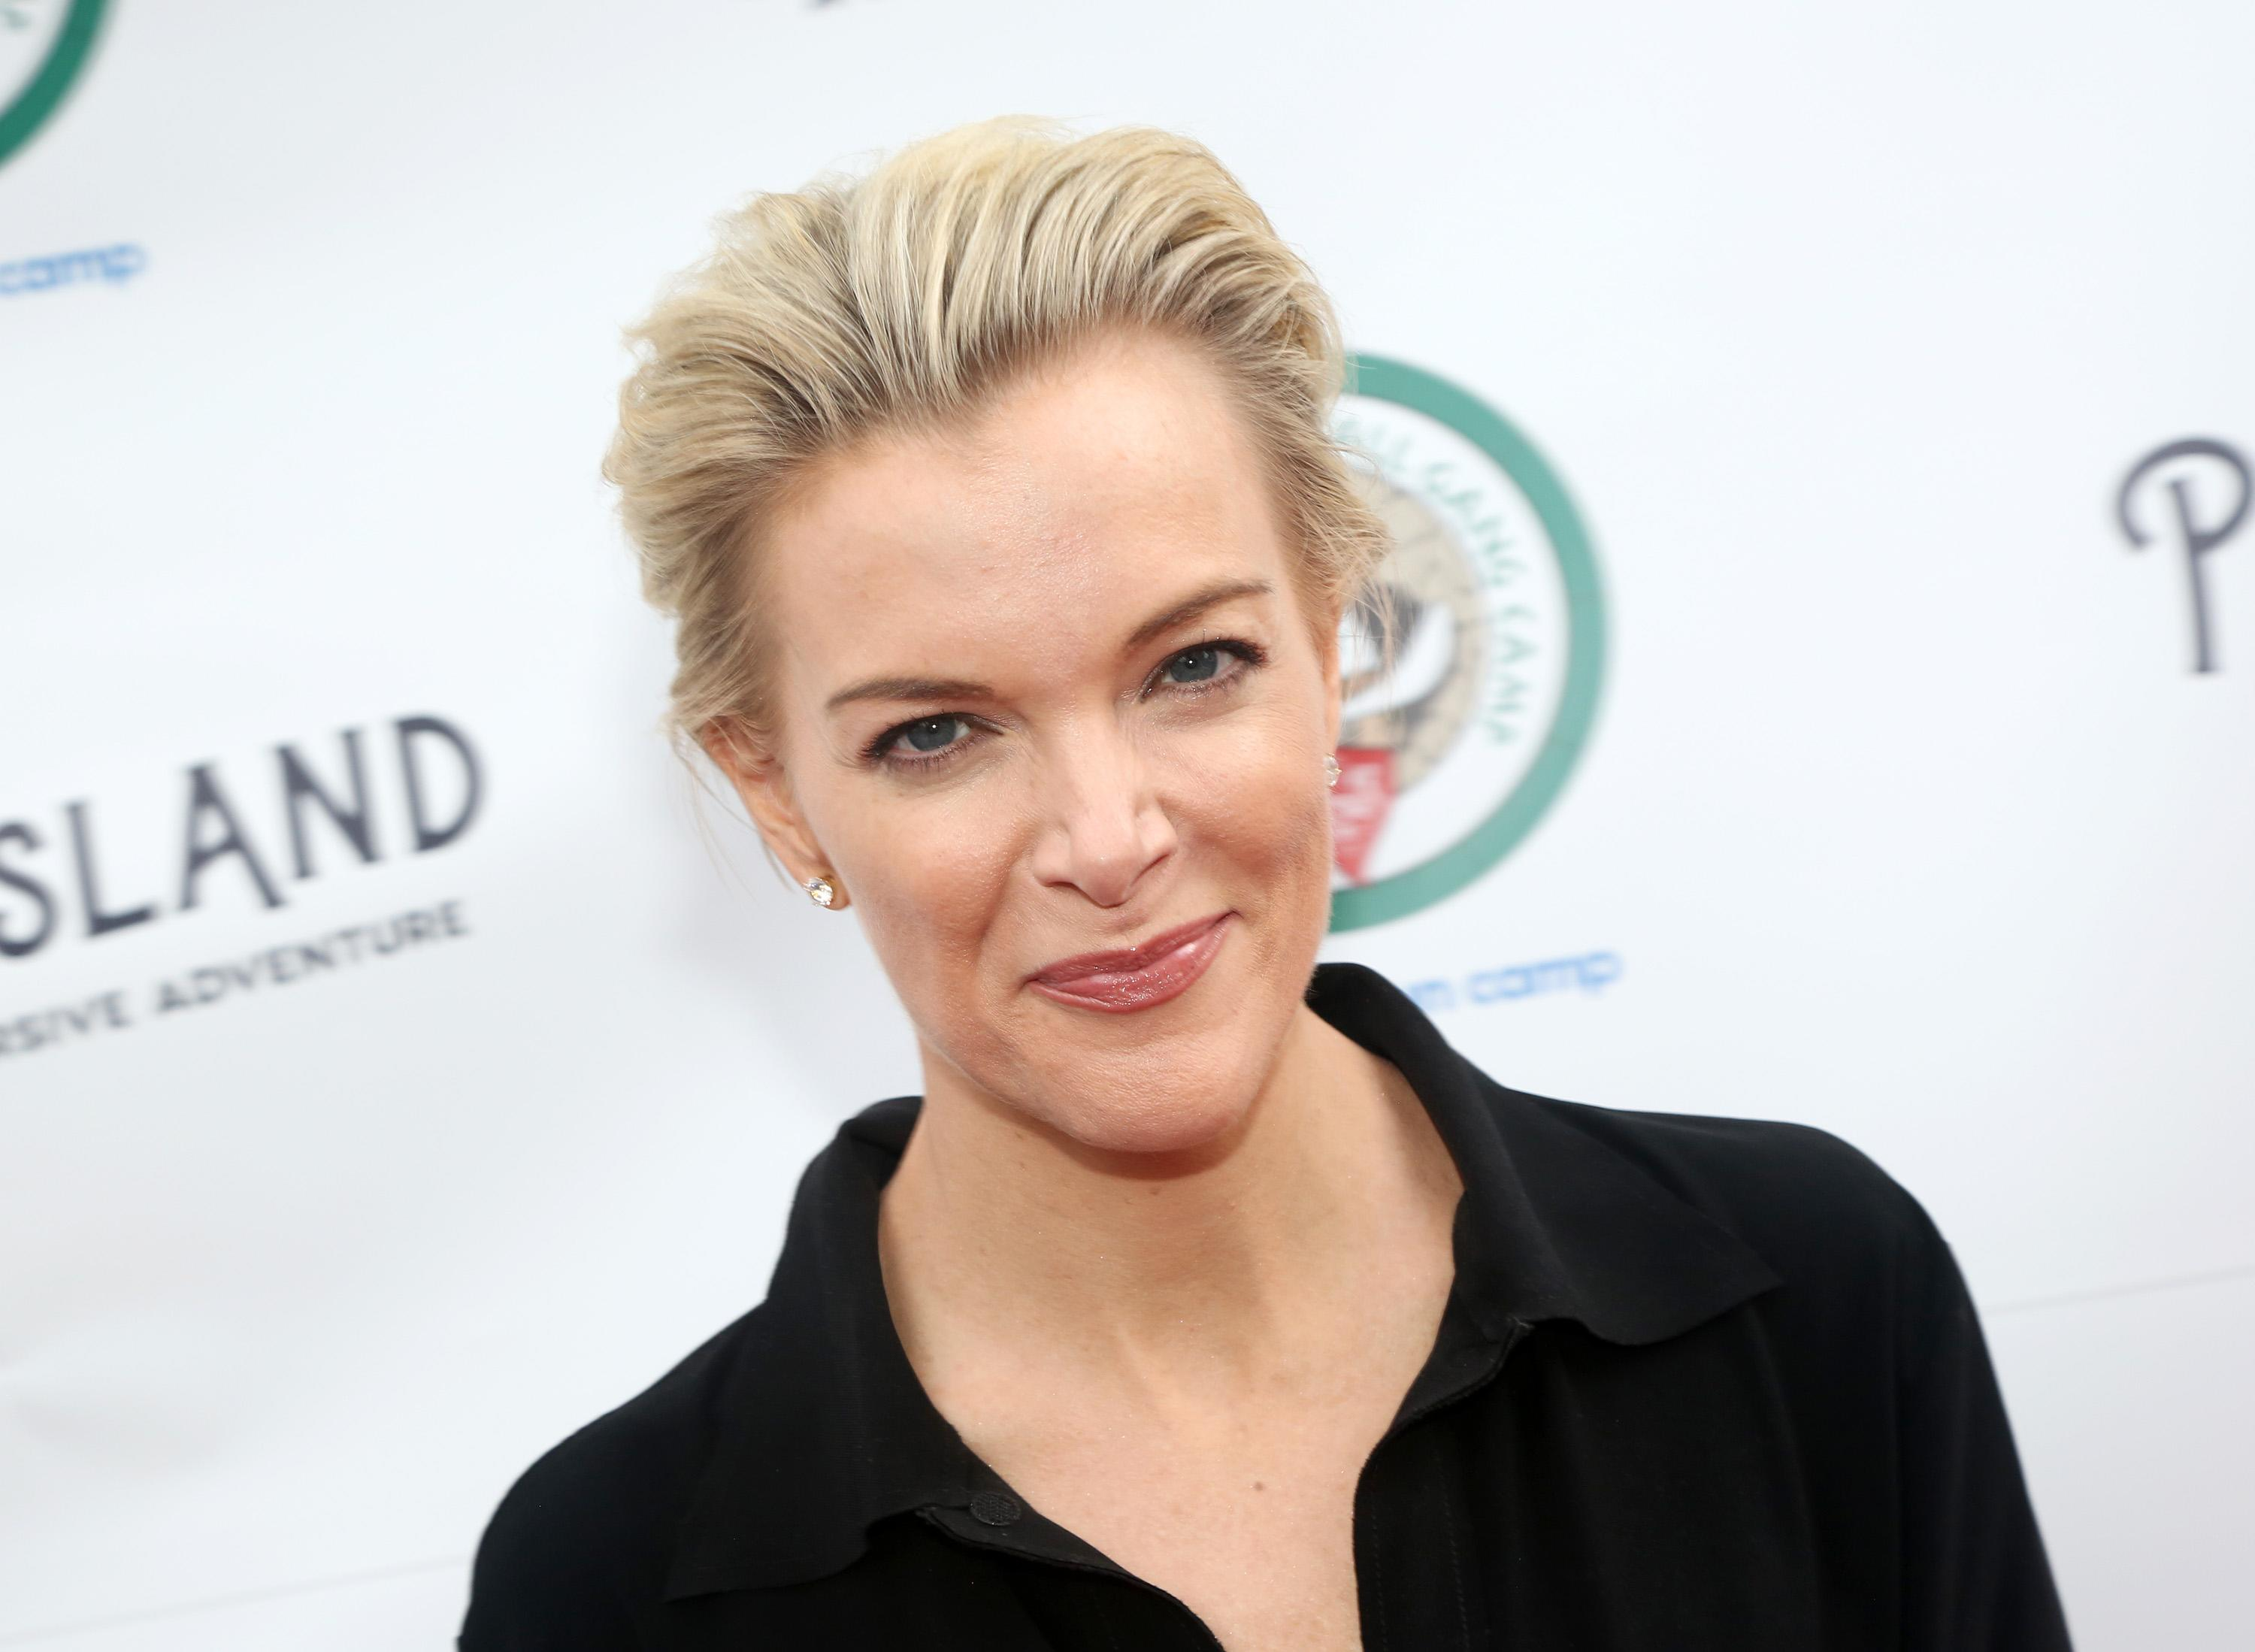 Megyn Kelly reacts to Charlize Theron playing her in 'Bombshell'